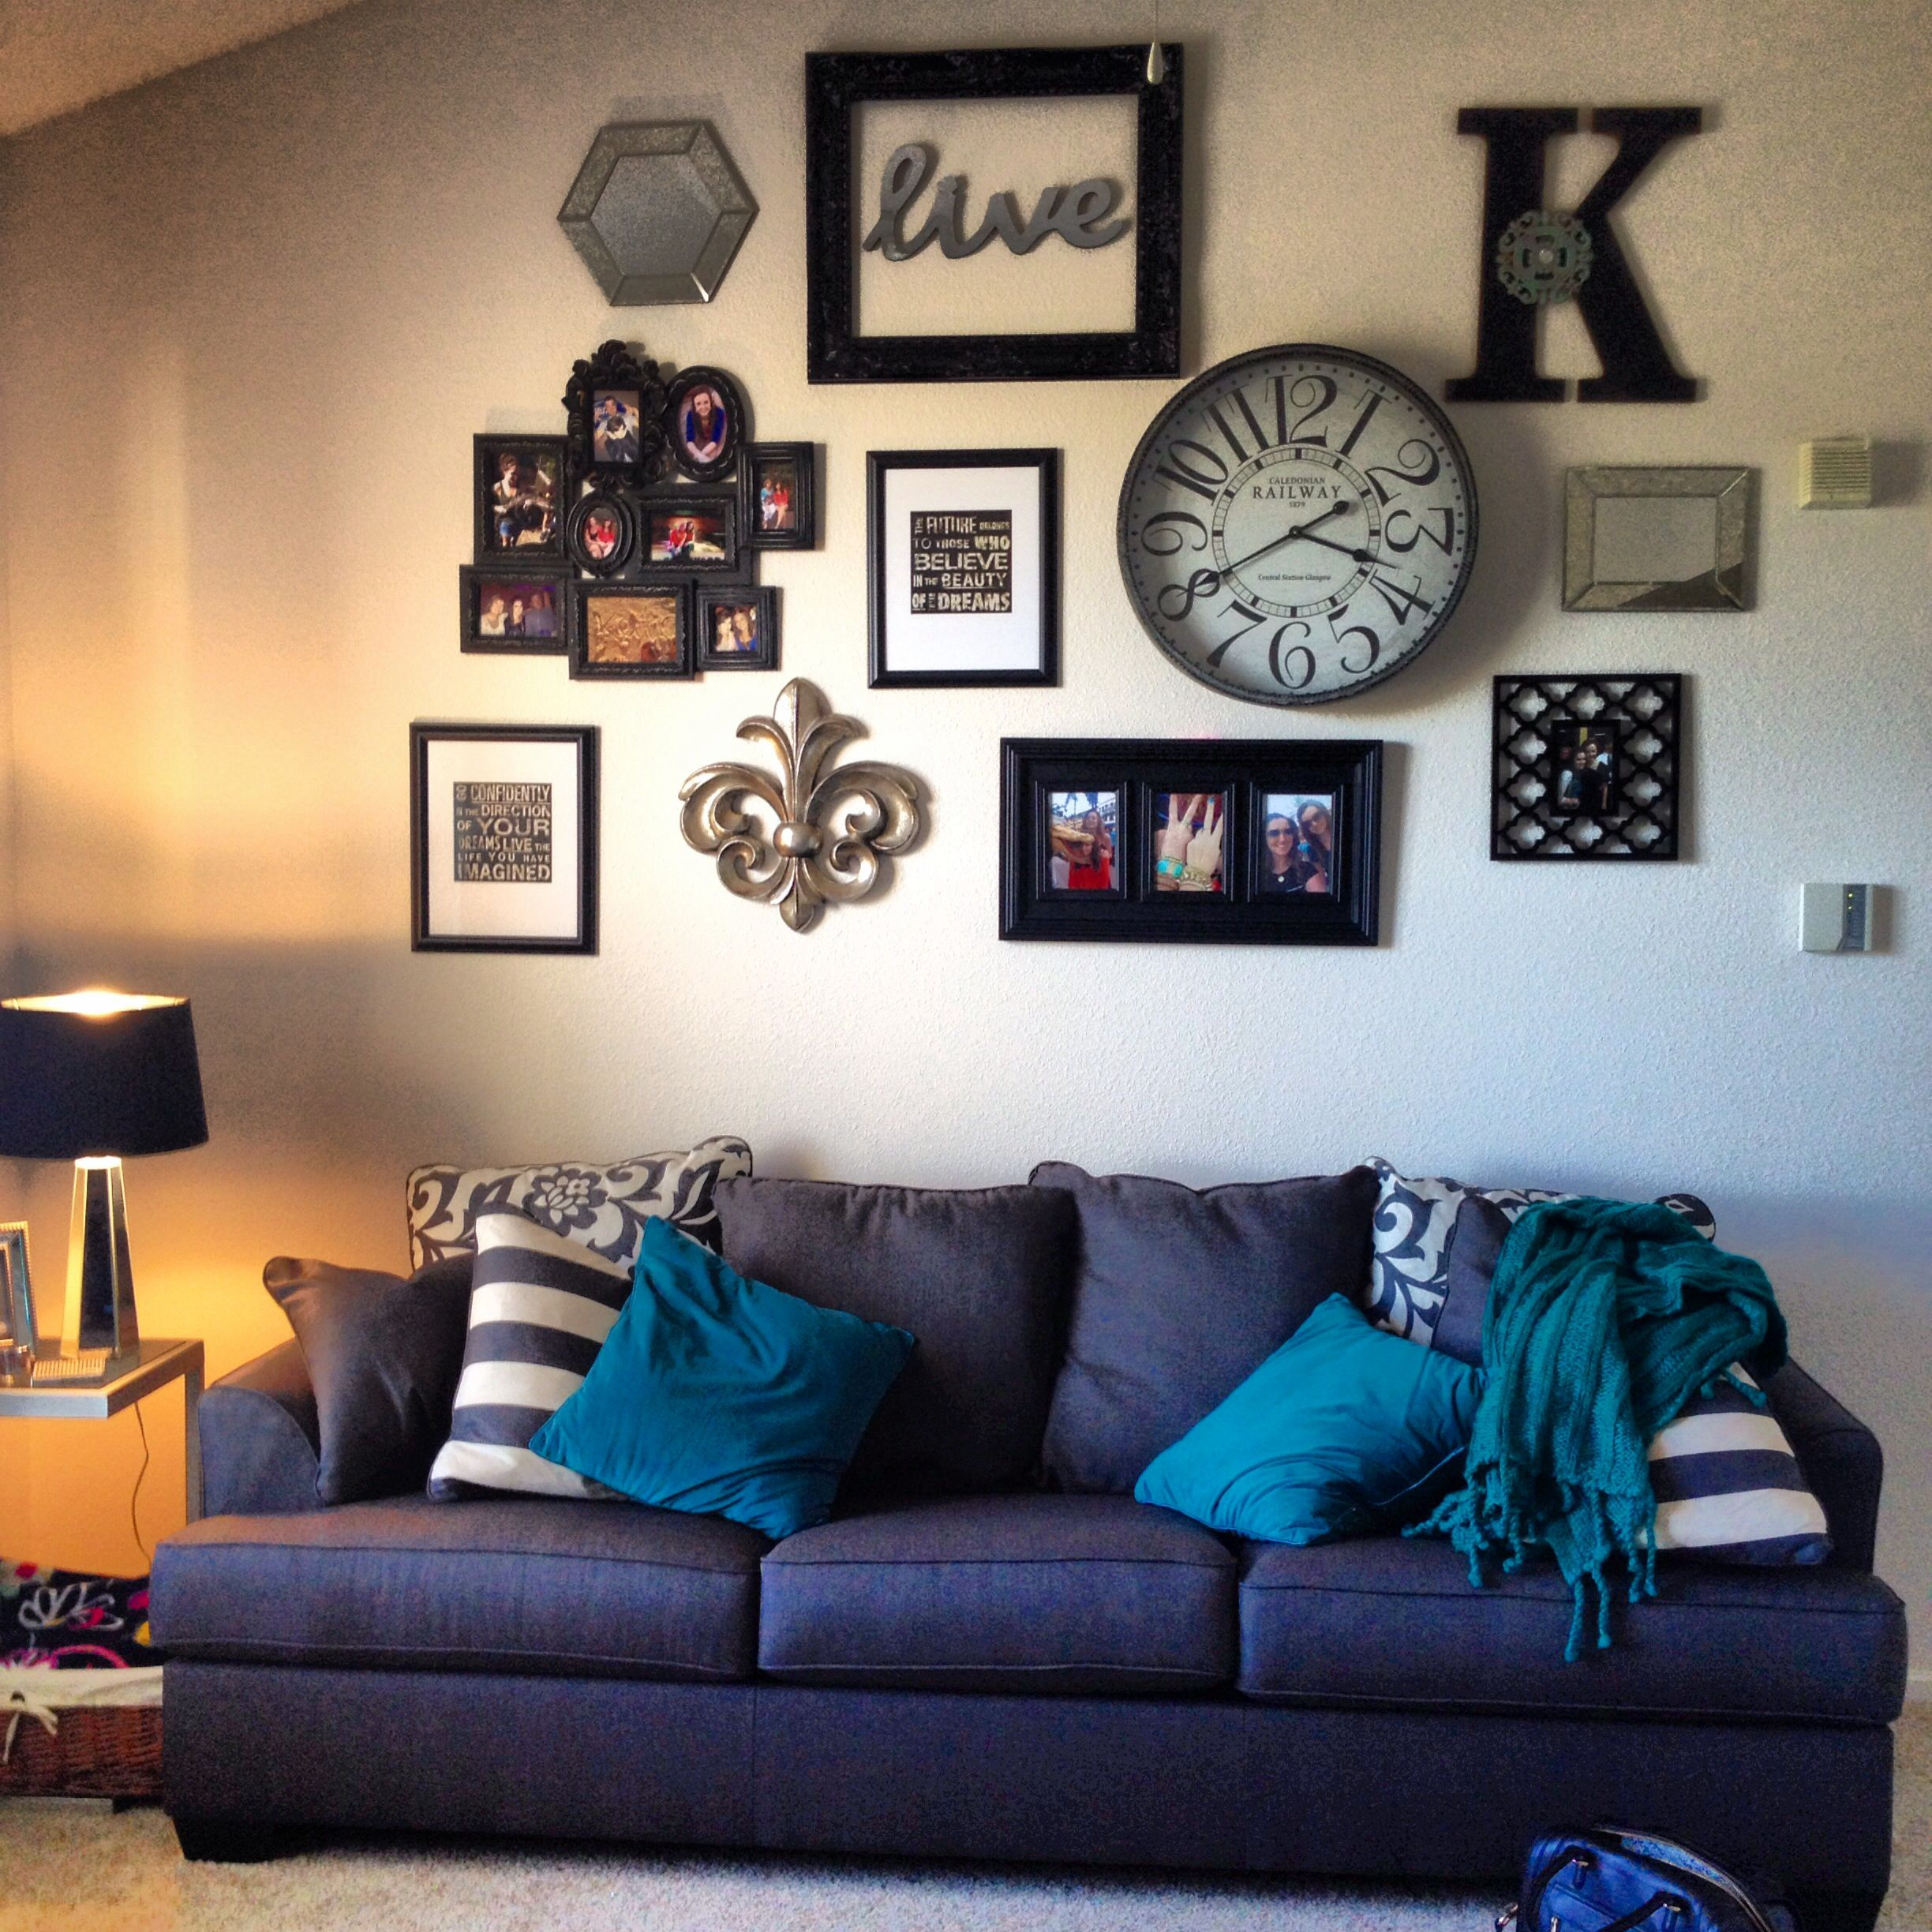 Wall Decor For Behind Couch : Wall collage interior design